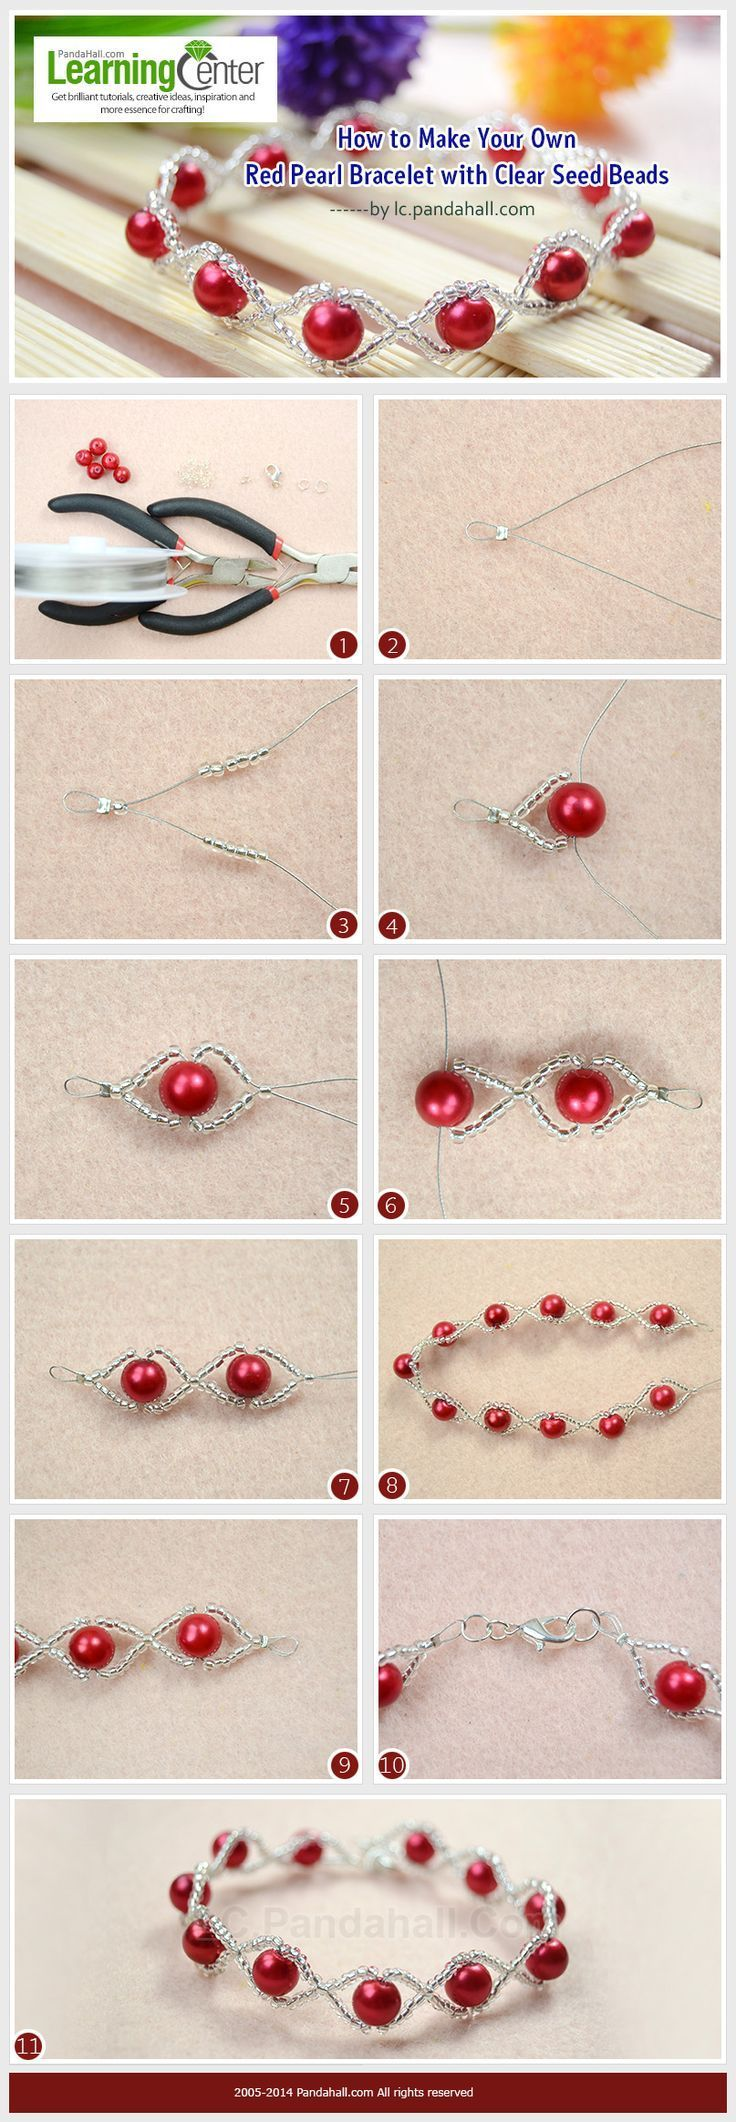 54 Best Craft Ideas Images On Pinterest Hama Beads Bead Patterns Hard Drive Circuit Board Desk Clock Livbit How To Make Your Own Red Pearl Bracelet With Clear Seed See More About